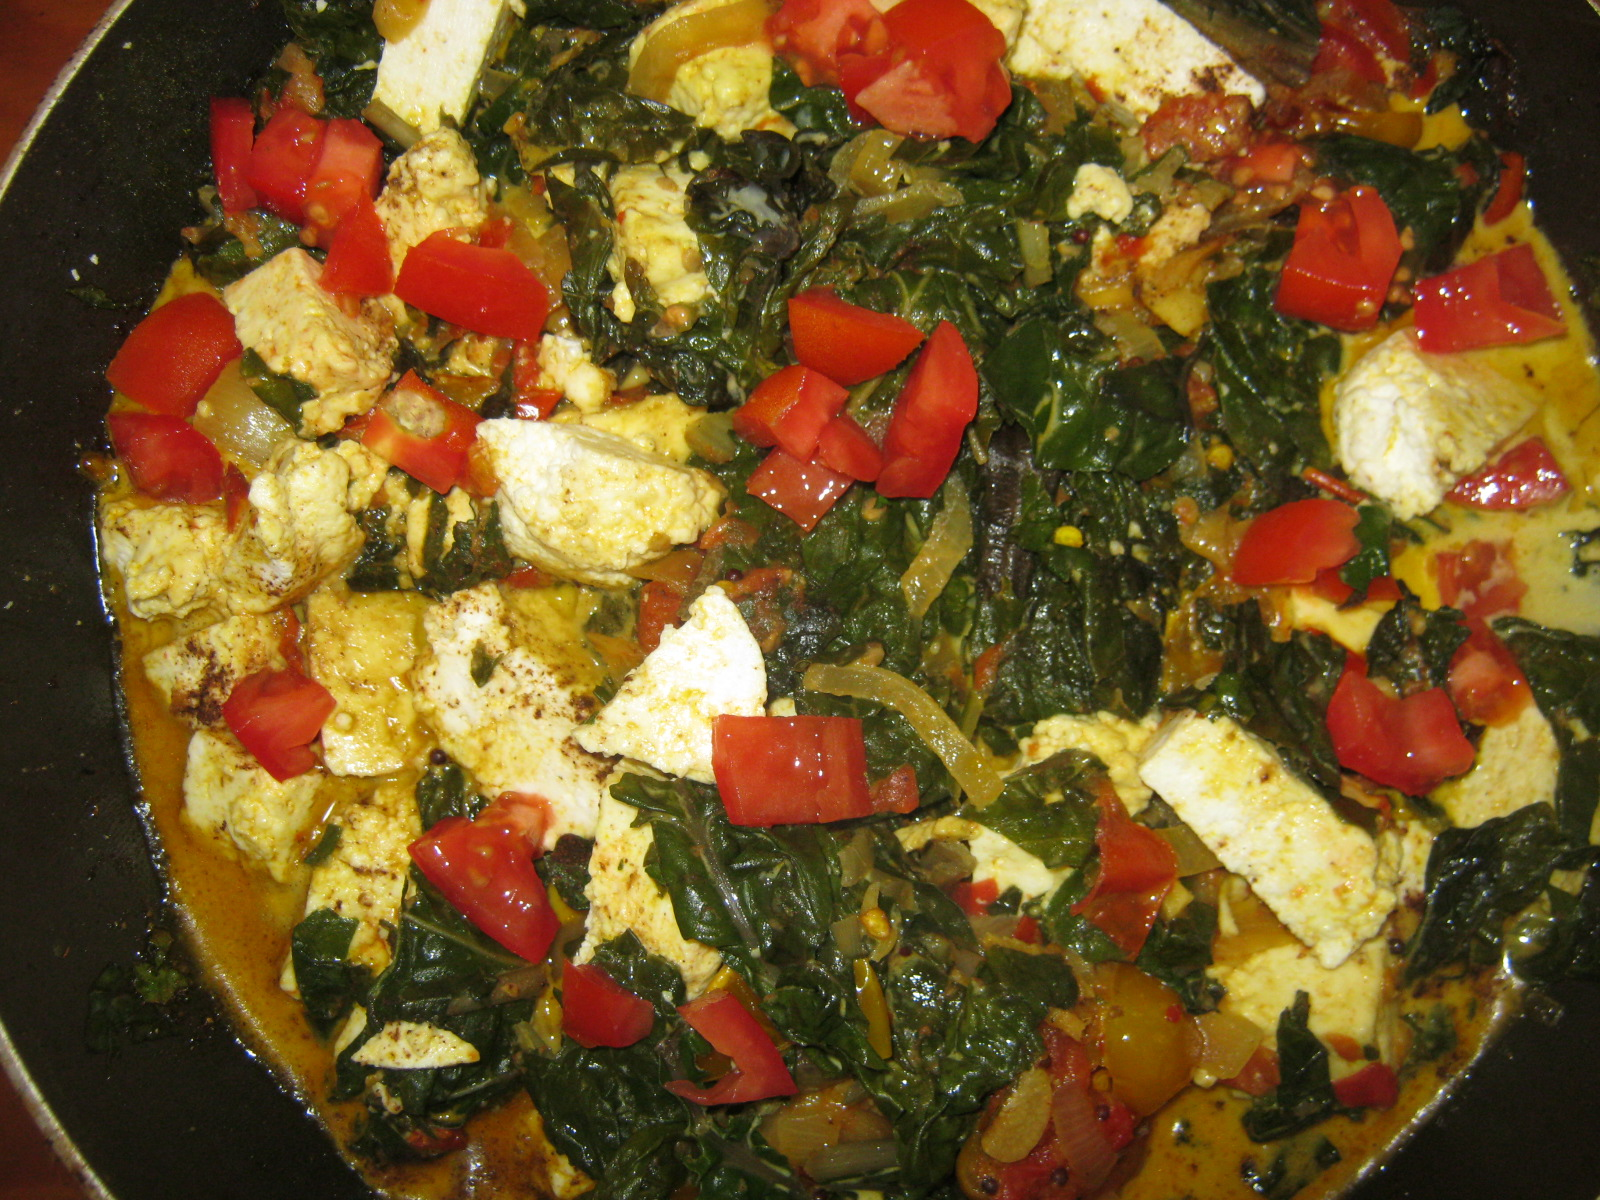 Finished palak paneer in a pan